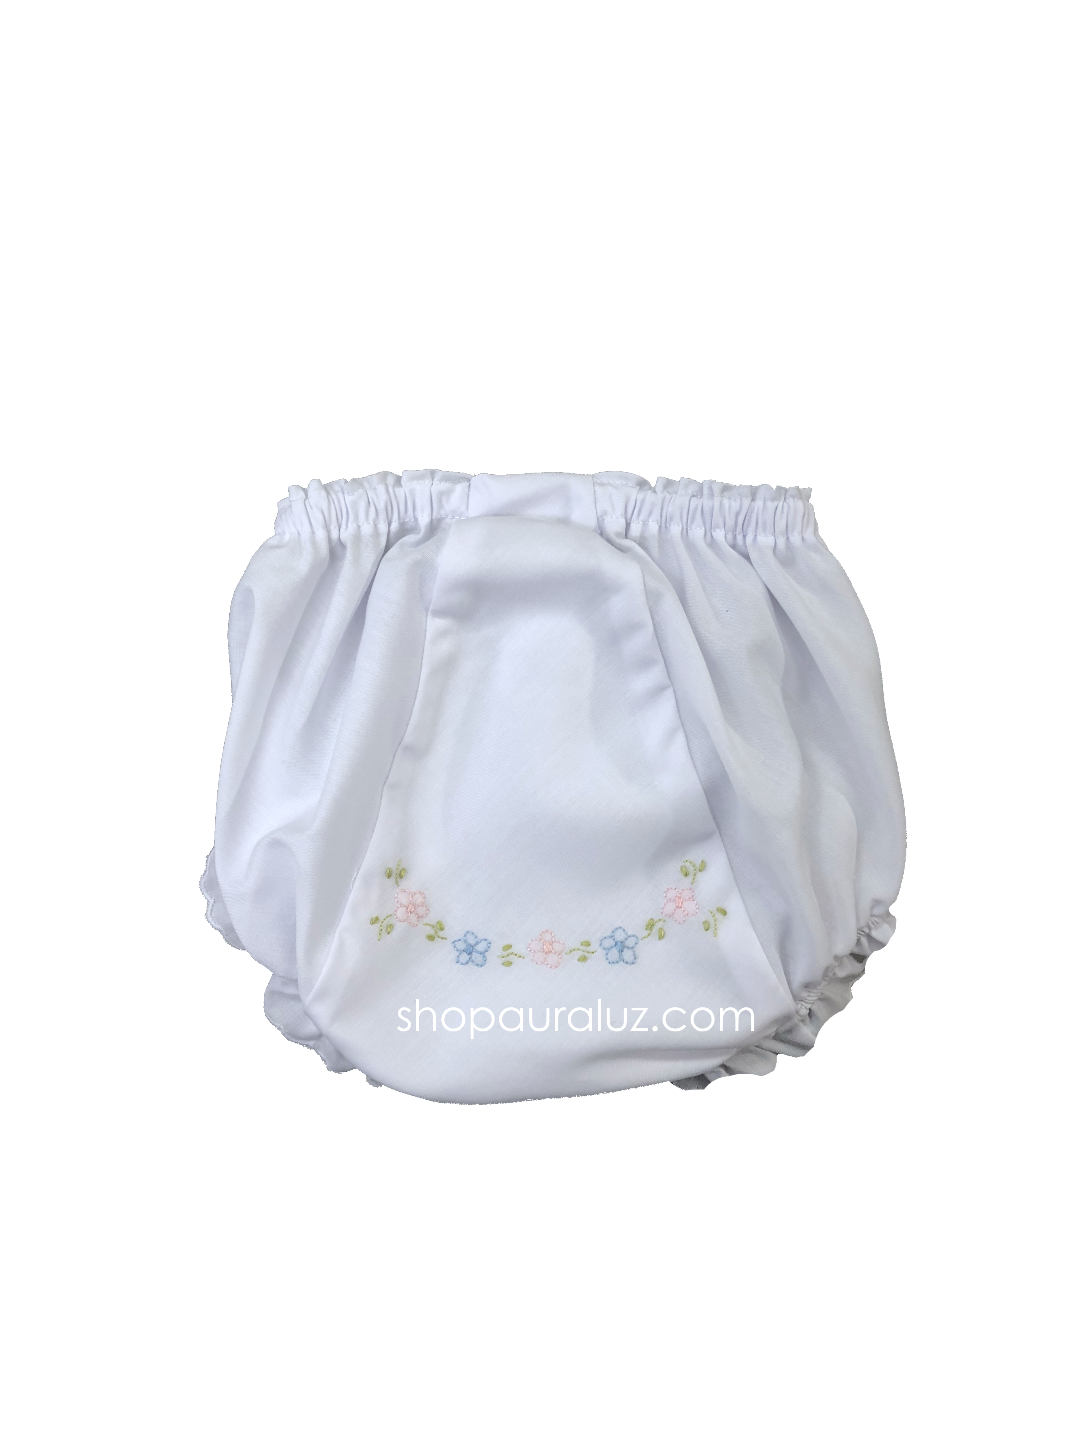 Auraluz Panty...White with scallops and embroidered flowers